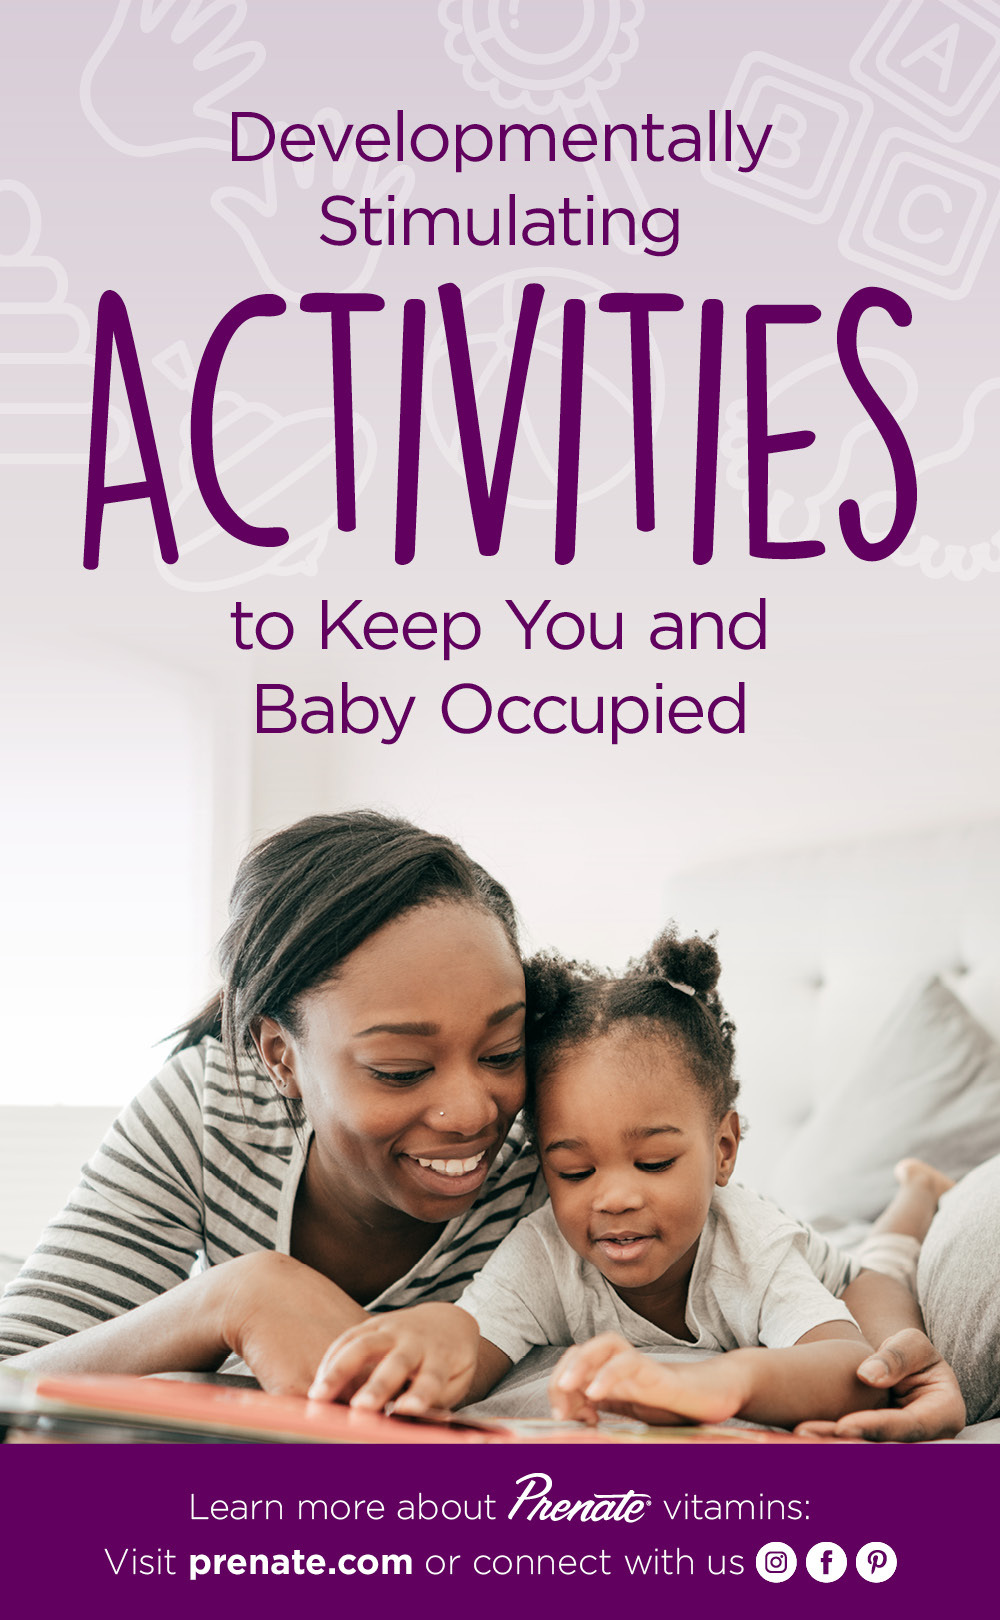 Activities to do with child Pinterest graphic